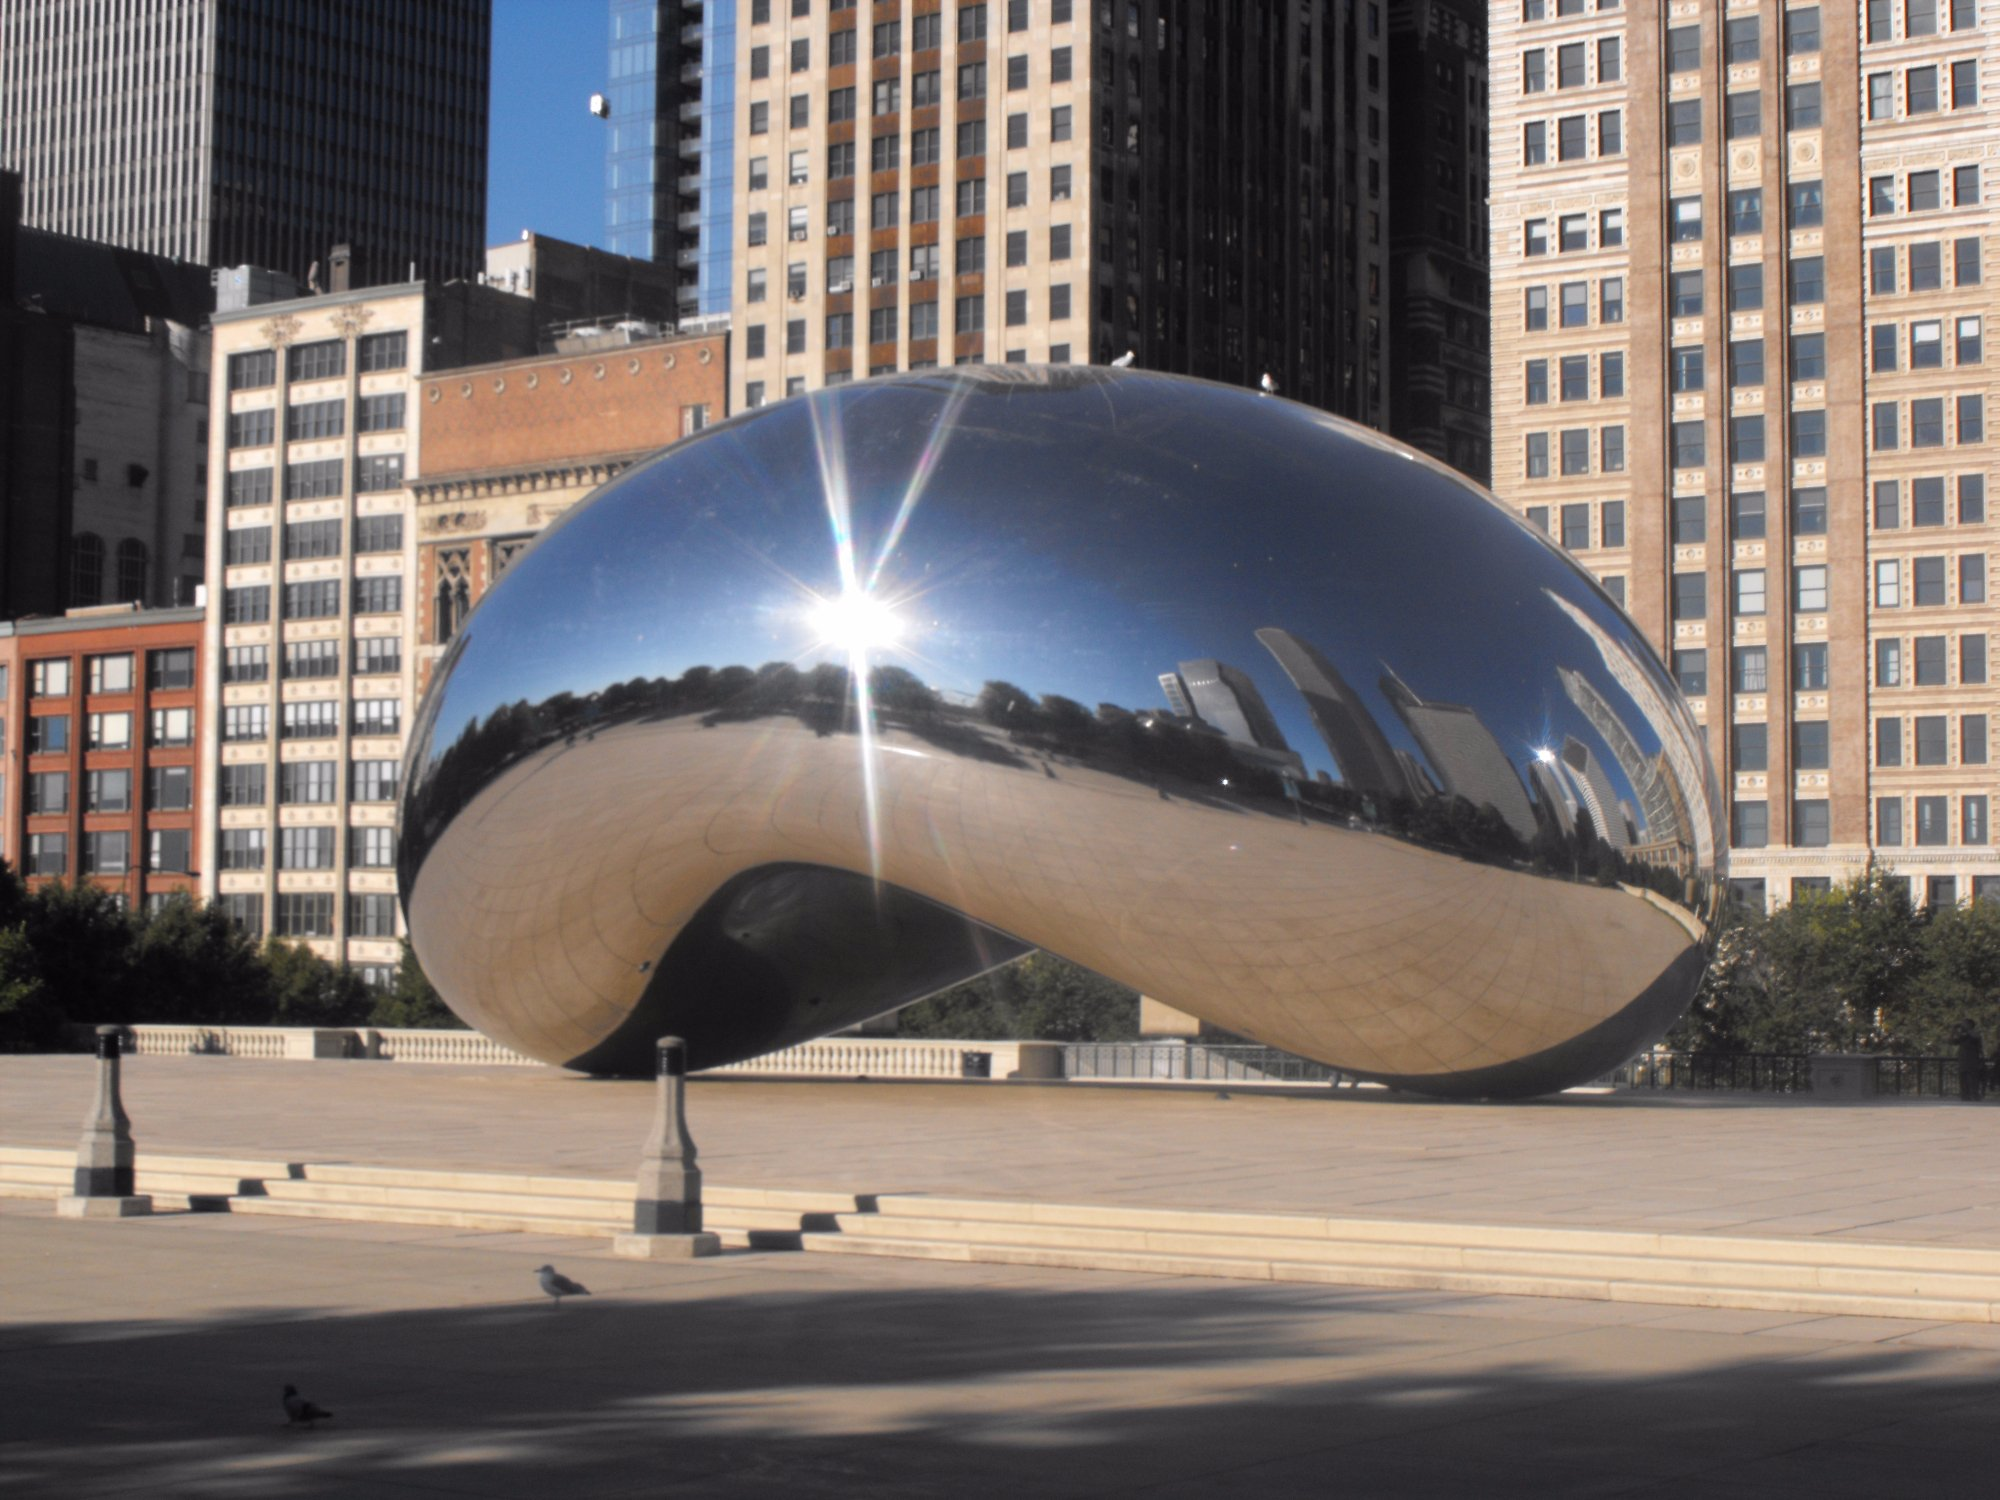 The famous Cloud Gate or Bean as many call it.